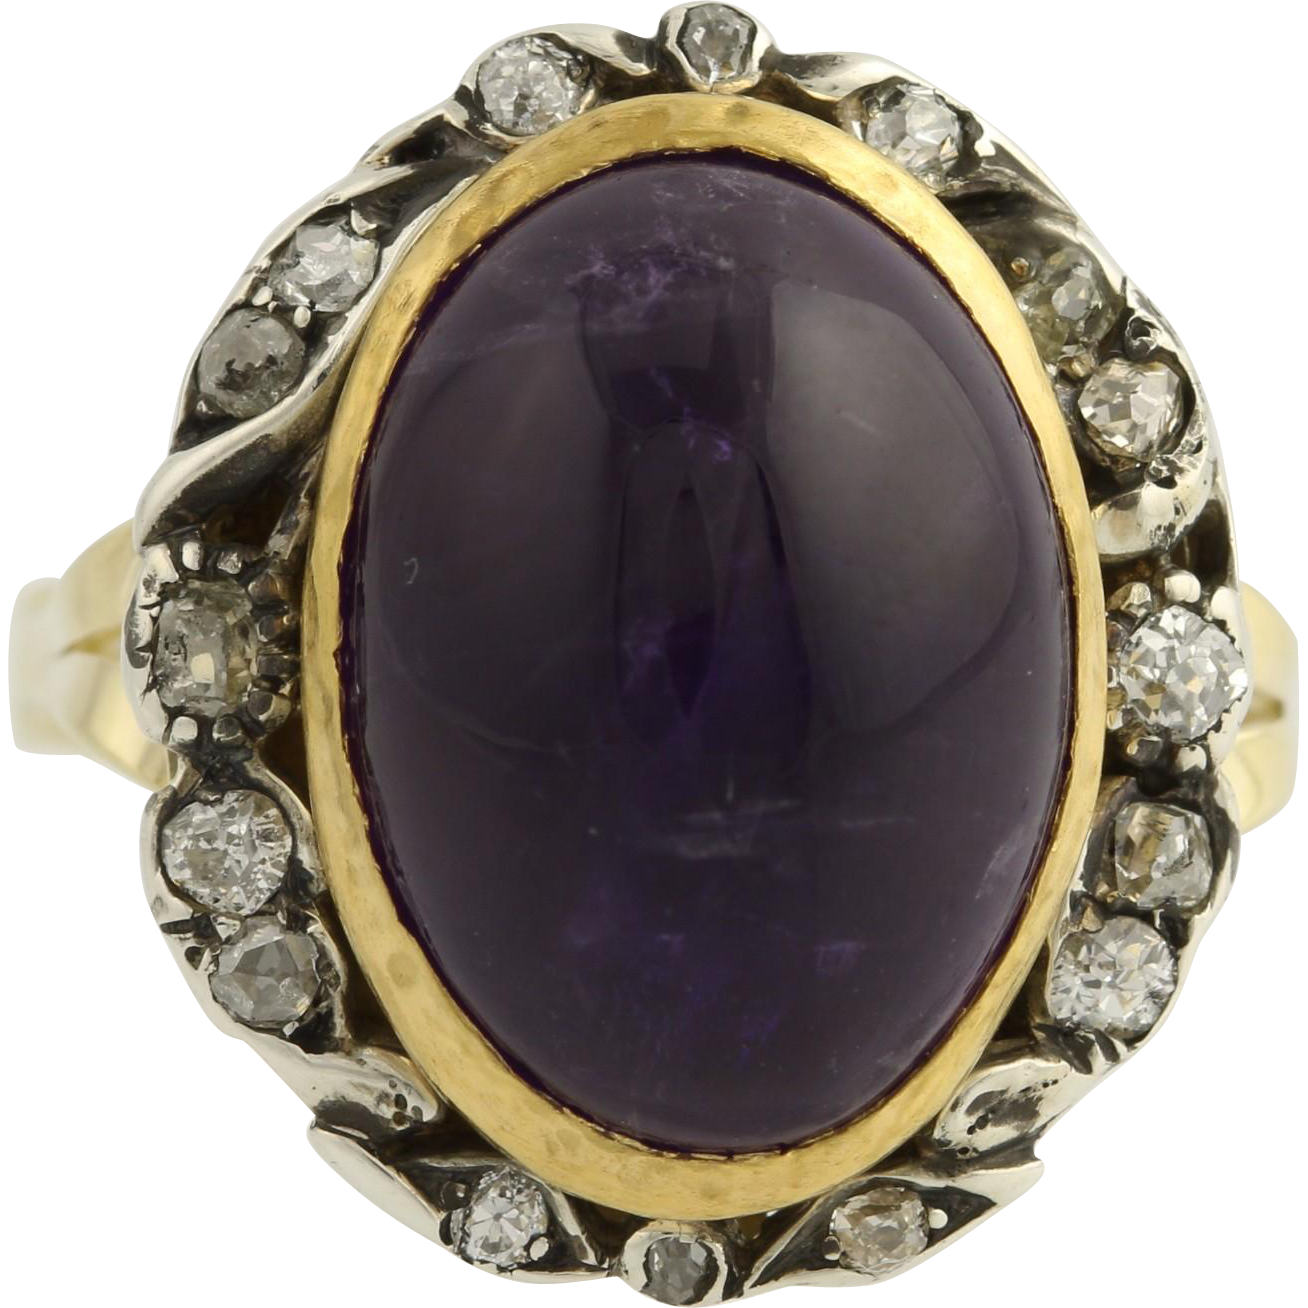 Vintage Amethyst and Diamond Ring - 14k Yellow Gold & Silver 9 1/2 Fine .33ctw R